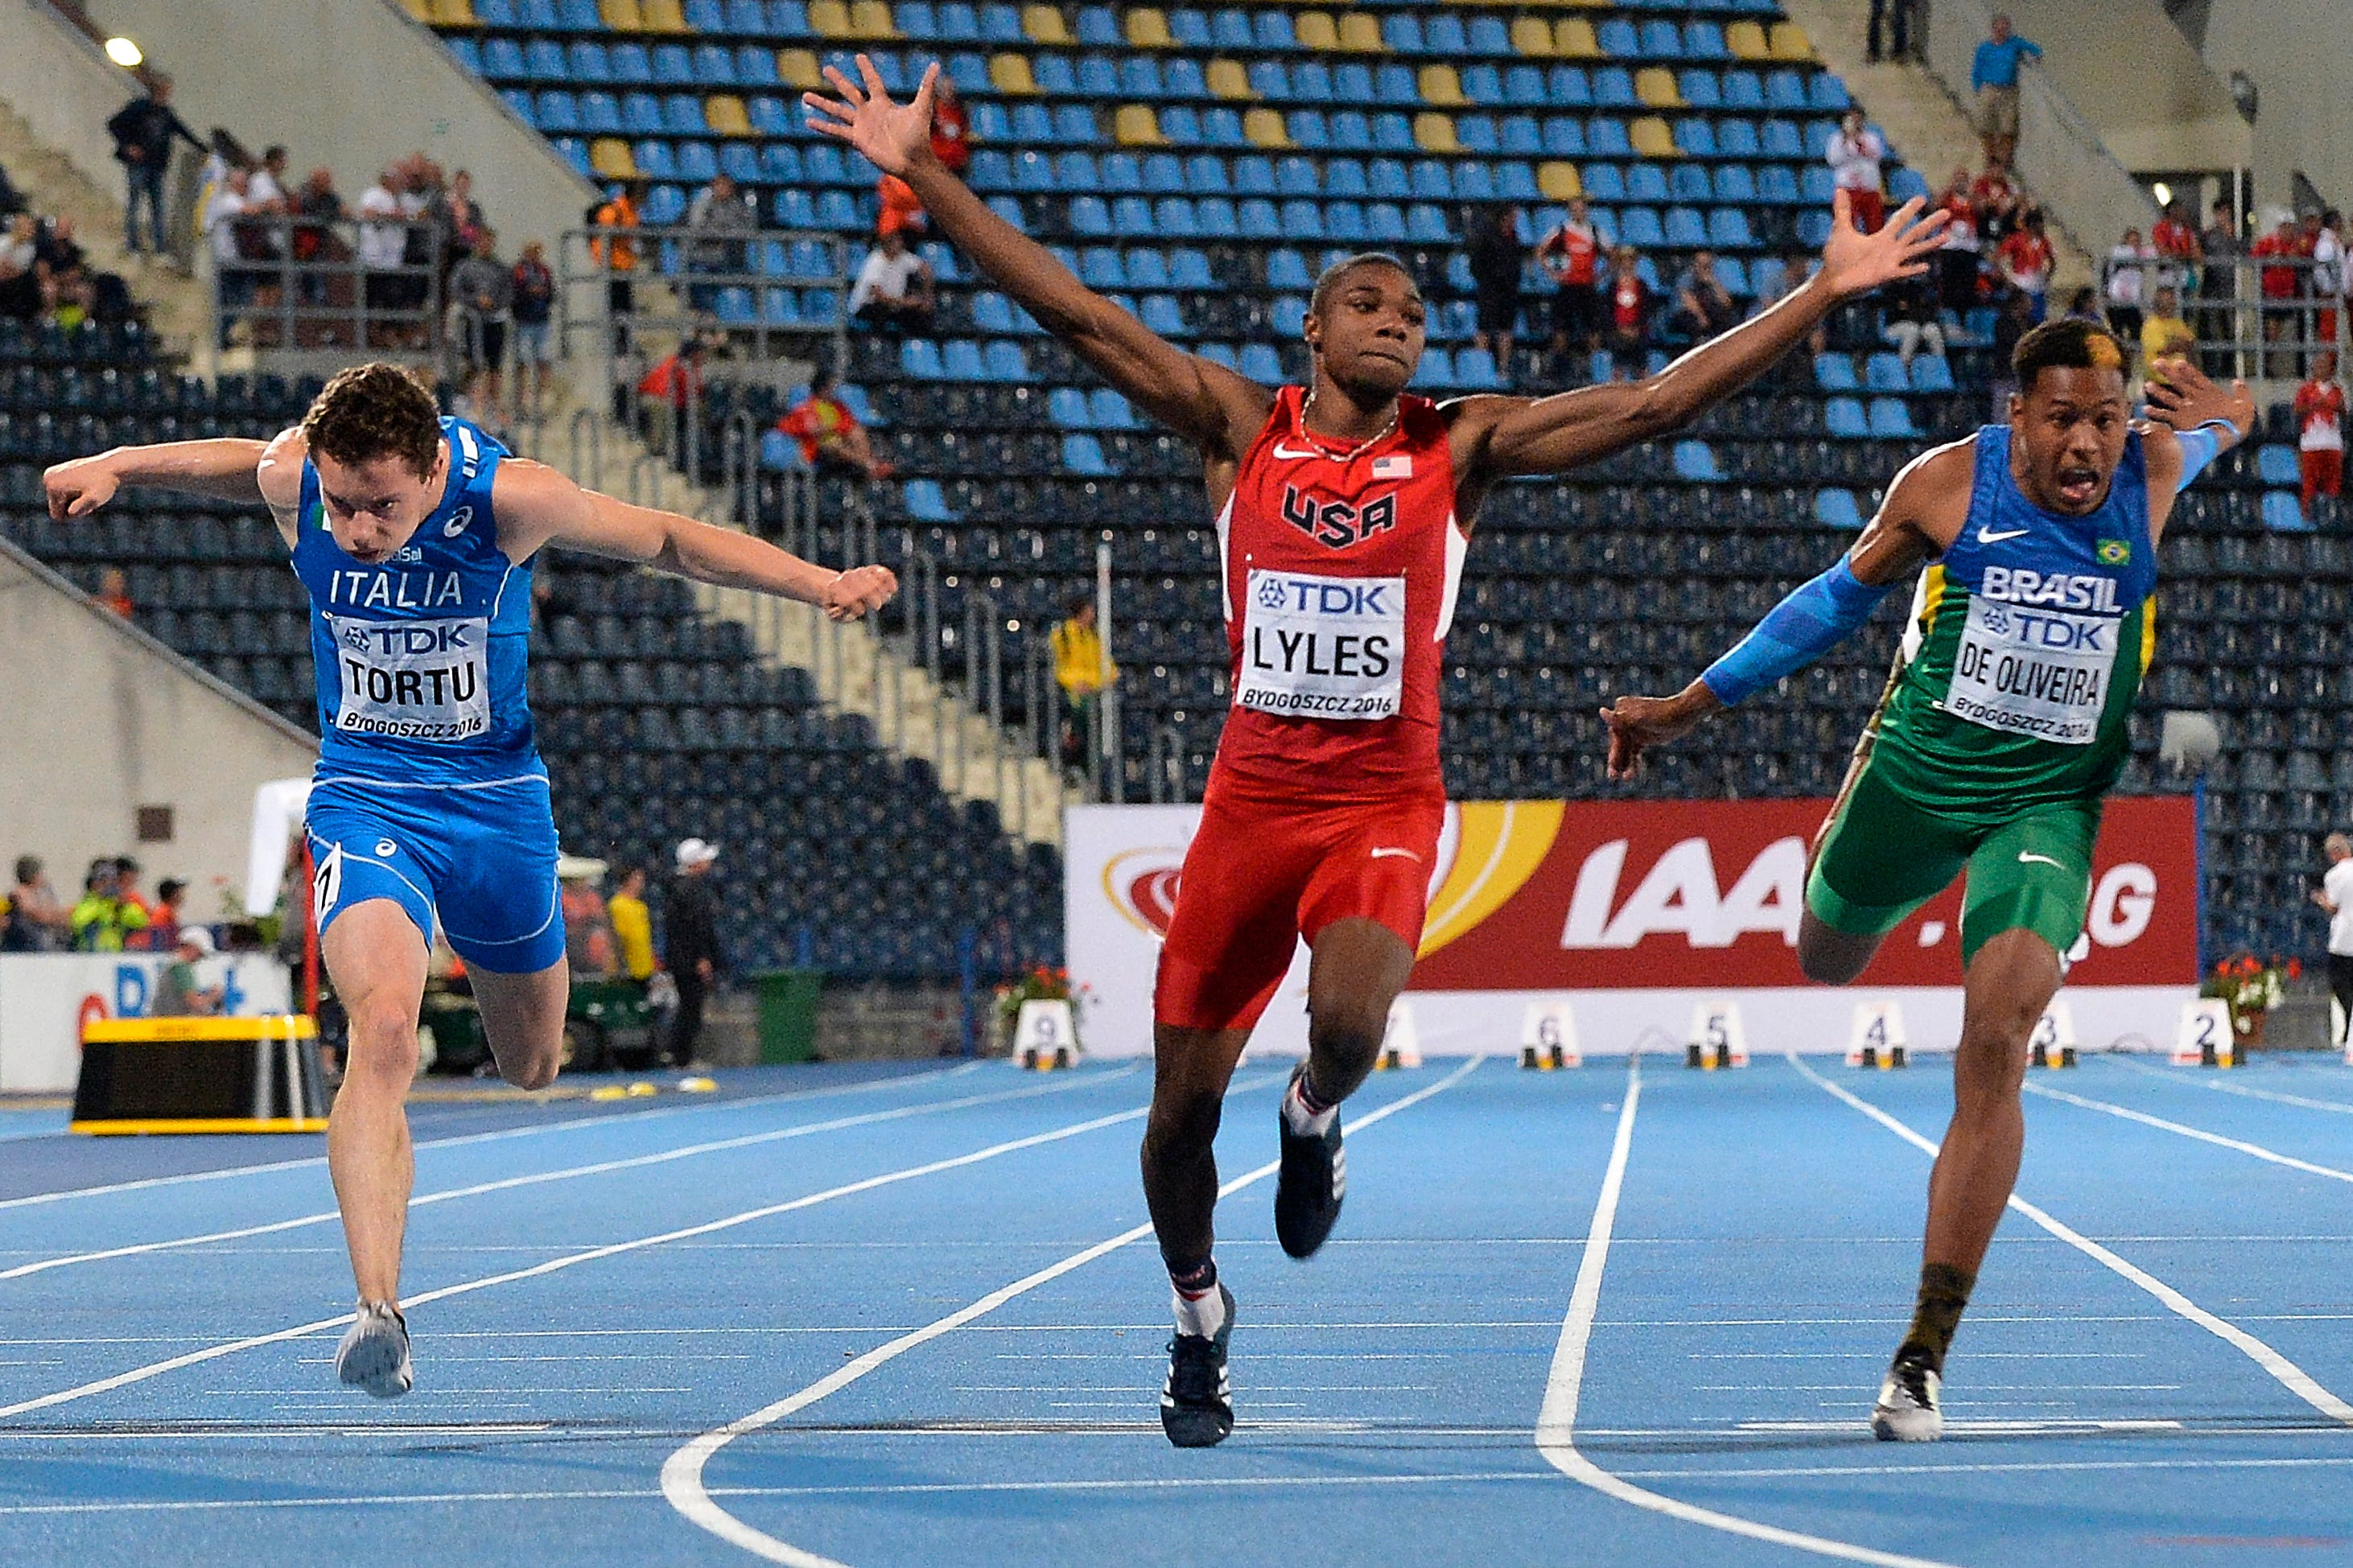 Noah Lyles celebrates victory in the 100-meter final while the 2016 IAAF World U20 Championships in Bydgoszcz, Poland. (Photo: Adam Nurkiewicz, Getty Images for IAAF)